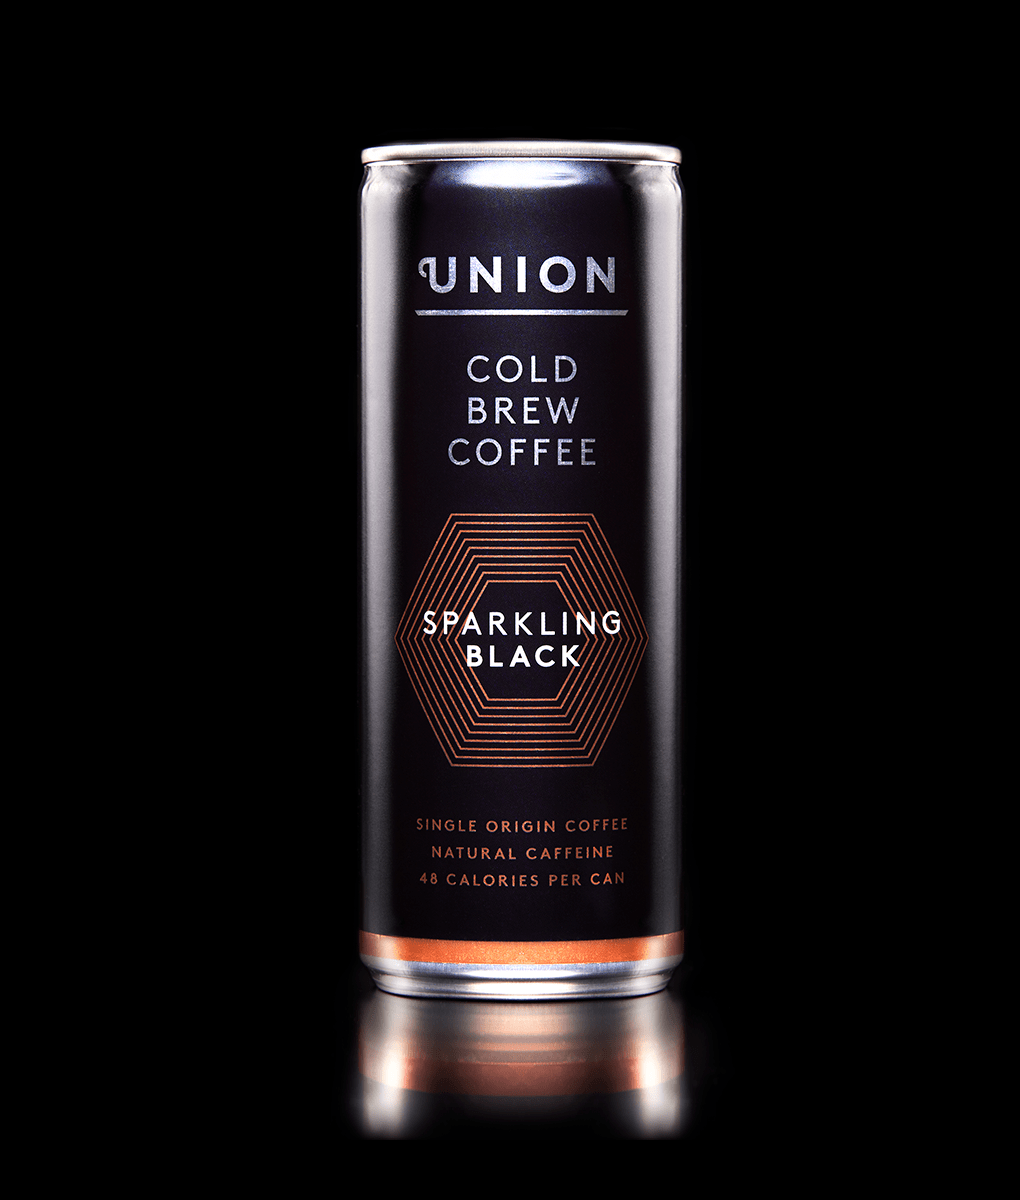 Union sparkling cold brew coffee